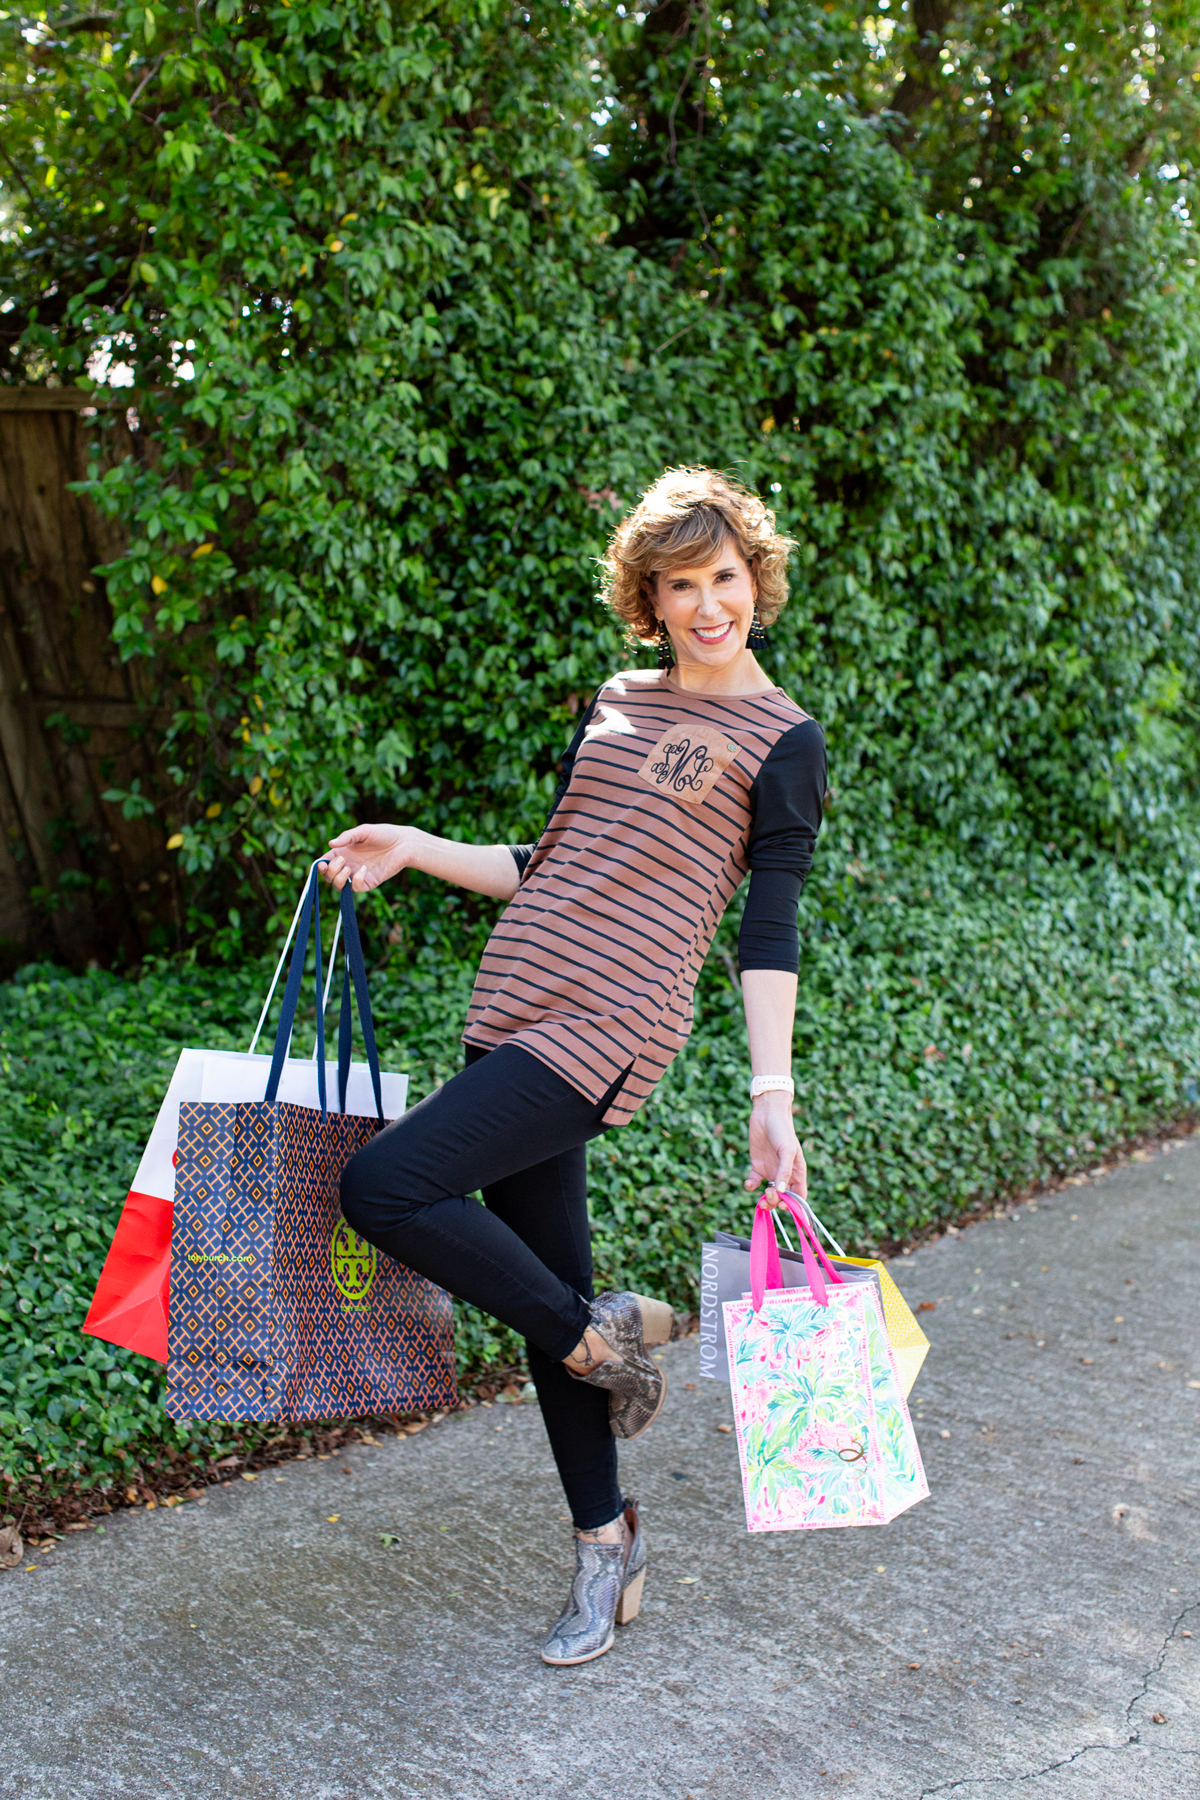 woman carrying multiple shopping bags